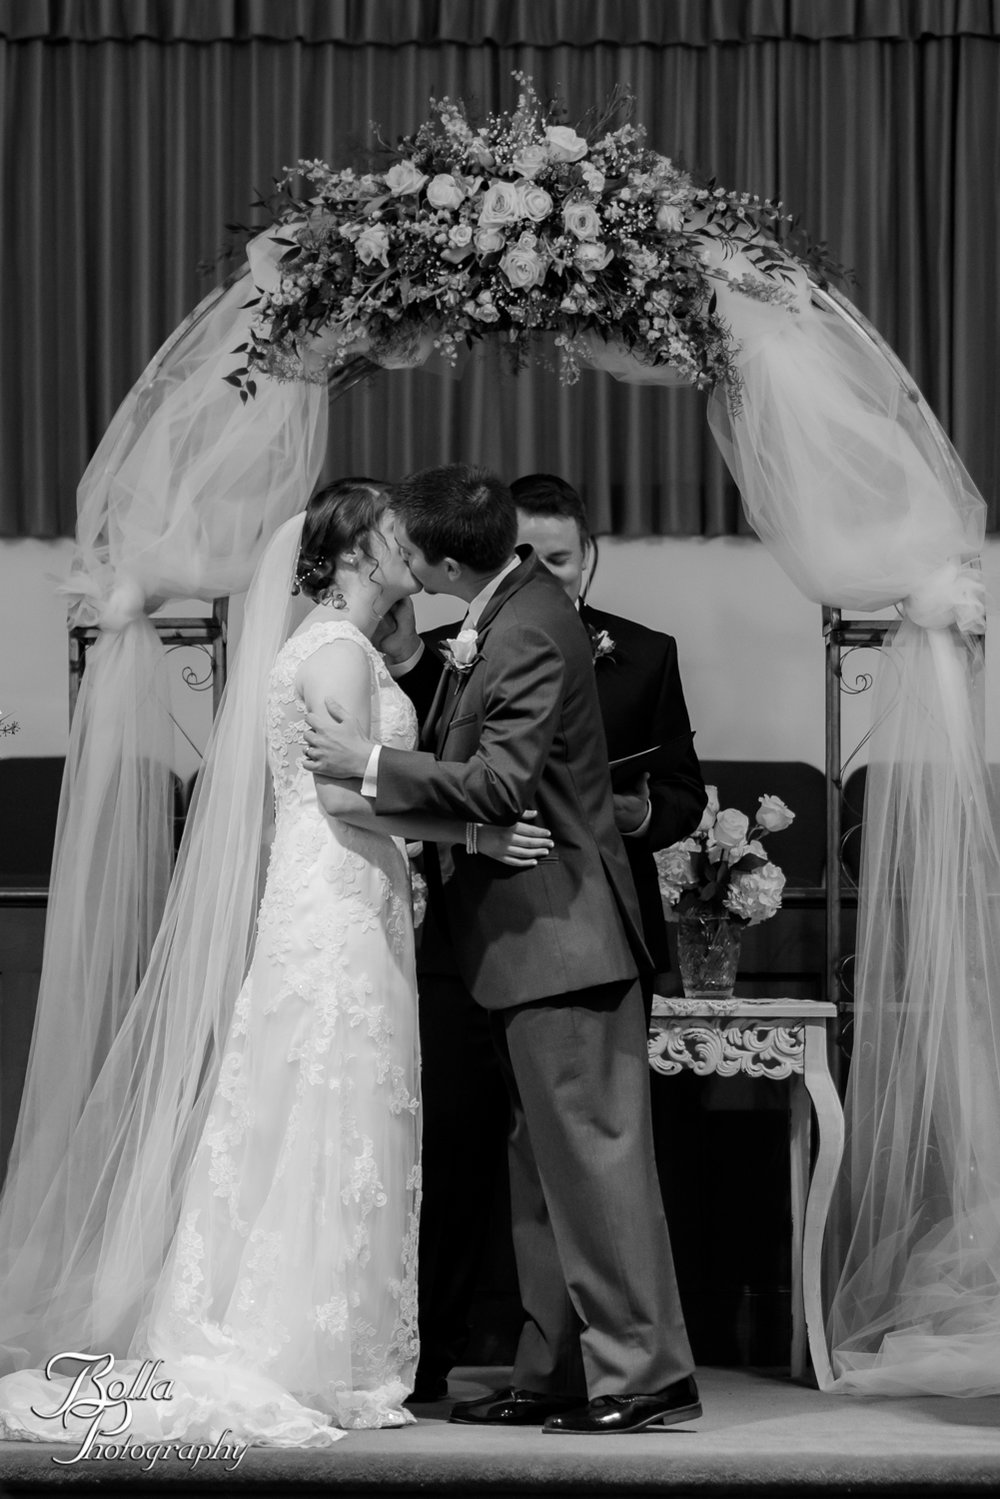 Bolla_Photography_St_Louis_wedding_photographer_Alton_IL__Baptist_Church-0199.jpg